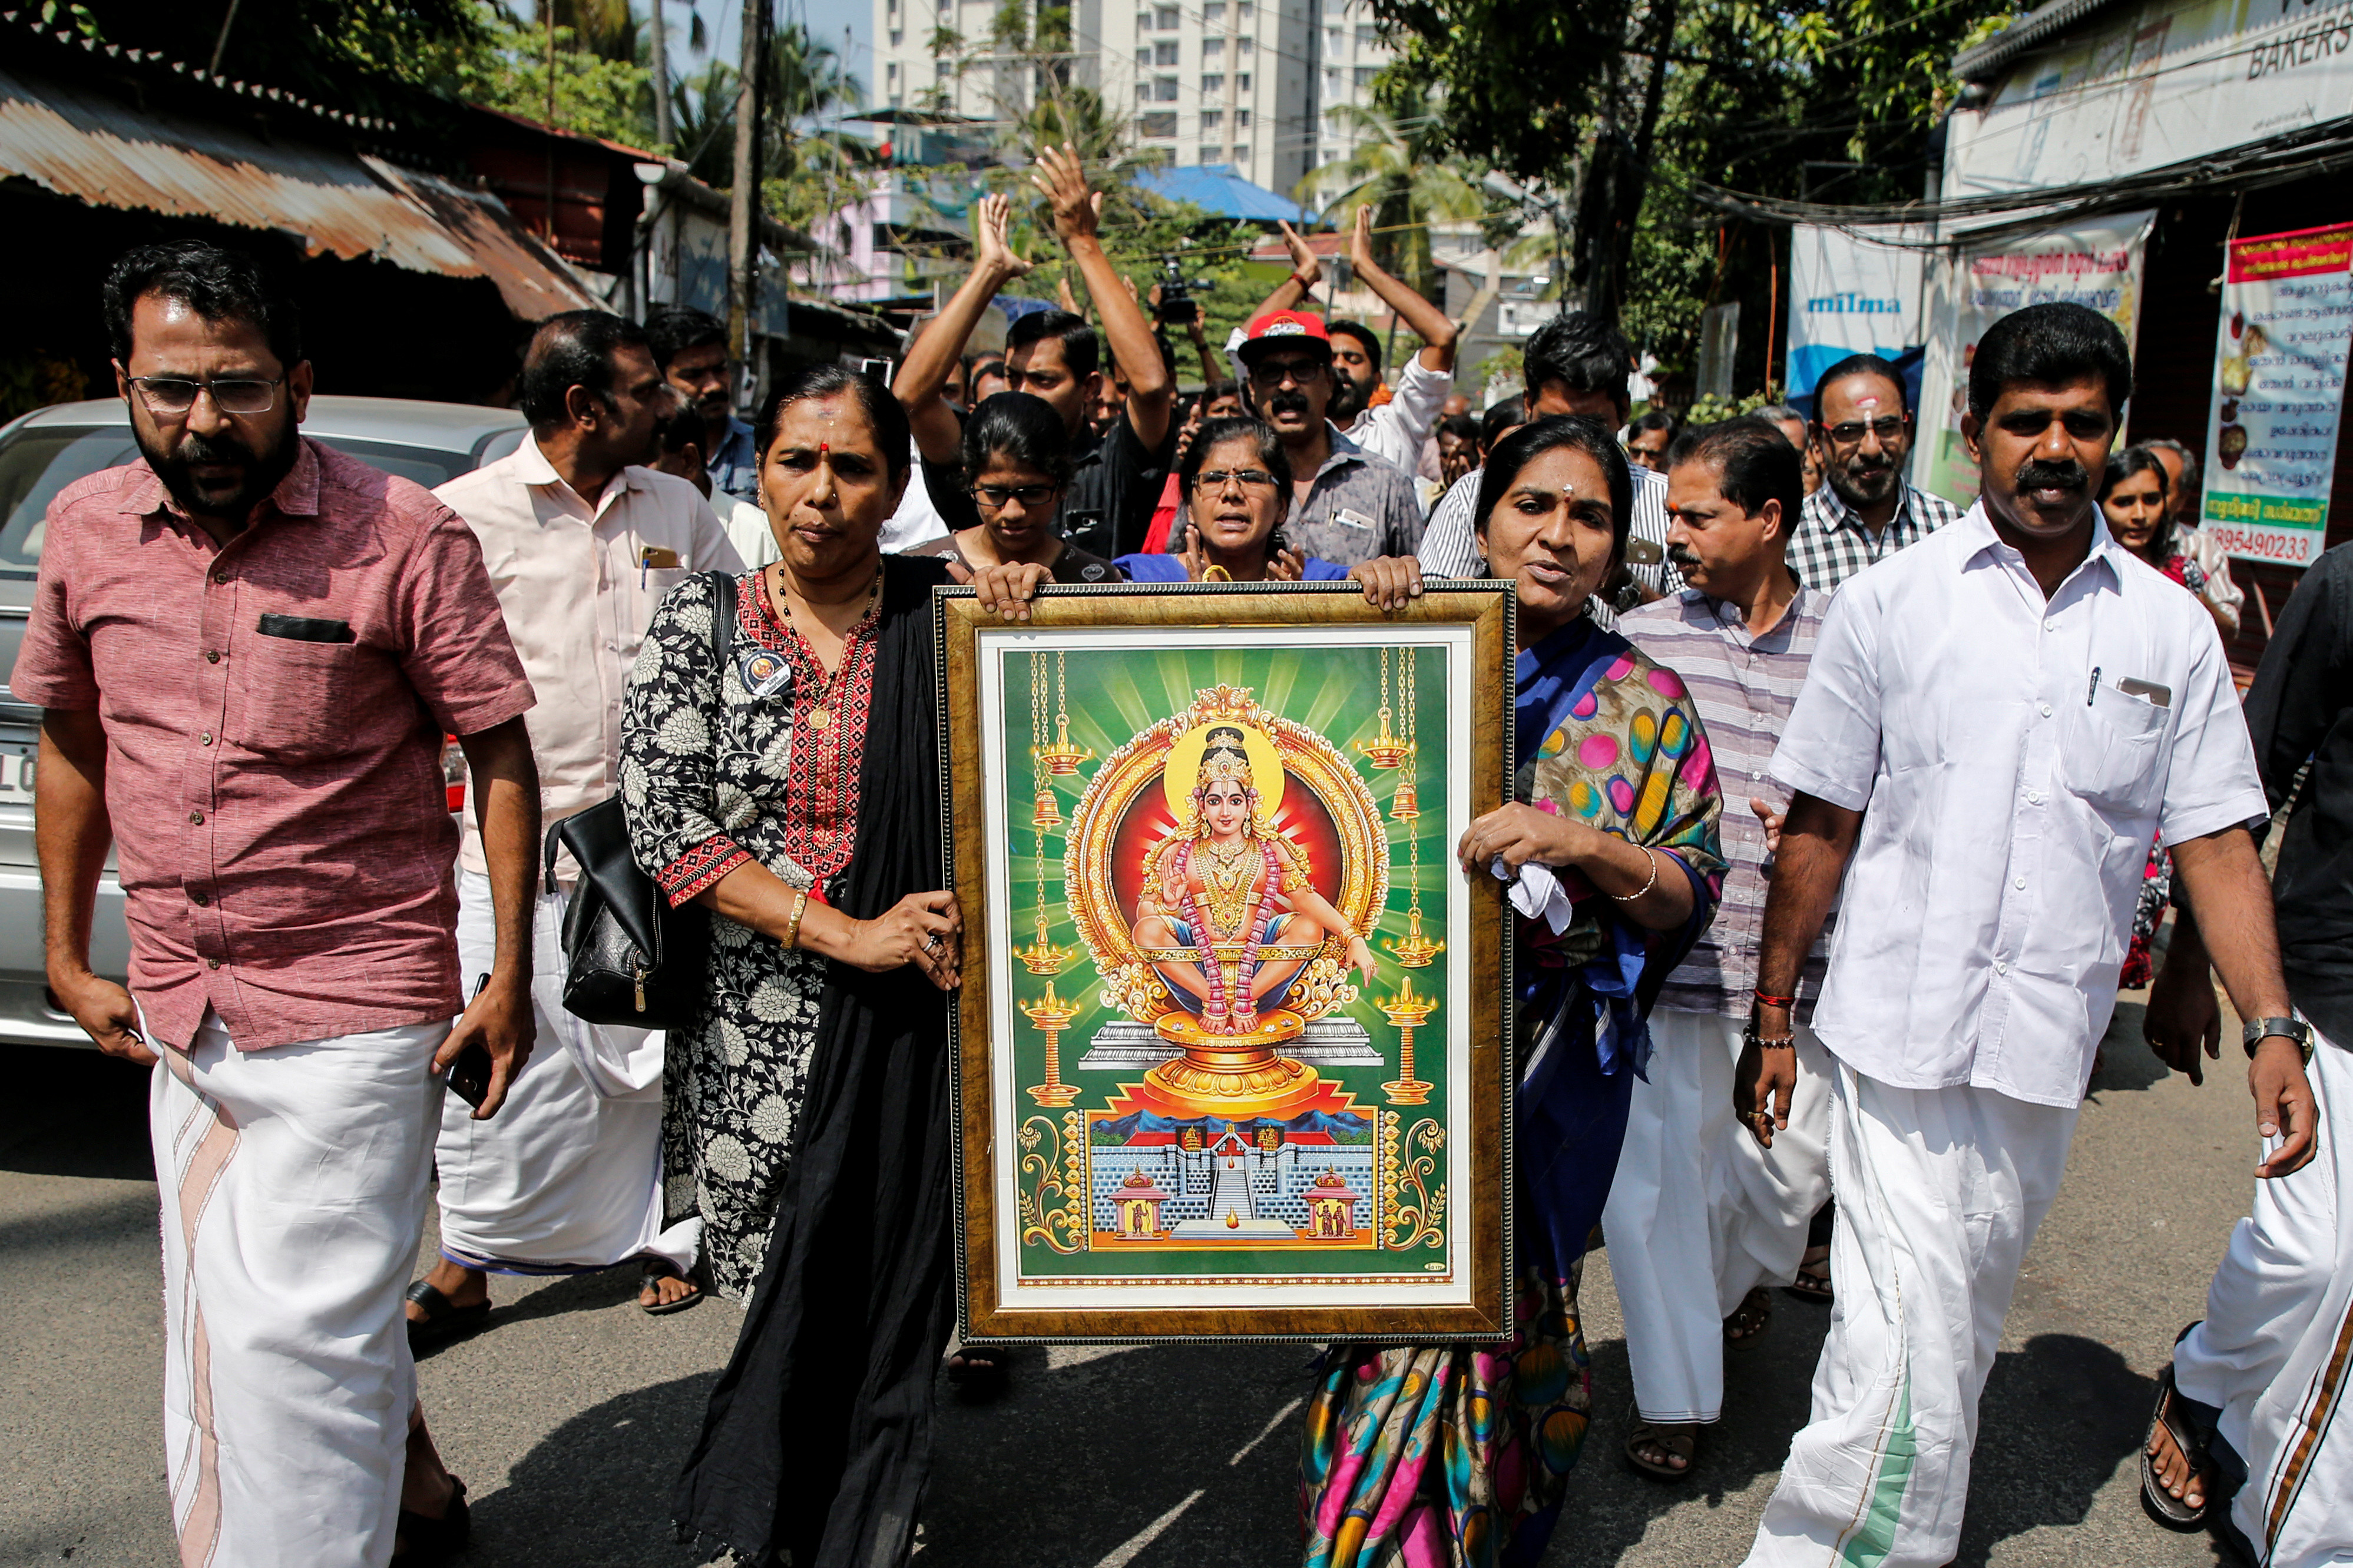 """Protesters hold a portrait of Hindu deity """"Ayappa"""" as they take part in a rally called by various Hindu organisations after two women entered the Sabarimala temple, in Kochi, India, January 2, 2019. REUTERS/Sivaram V - RC15D0A67BD0"""